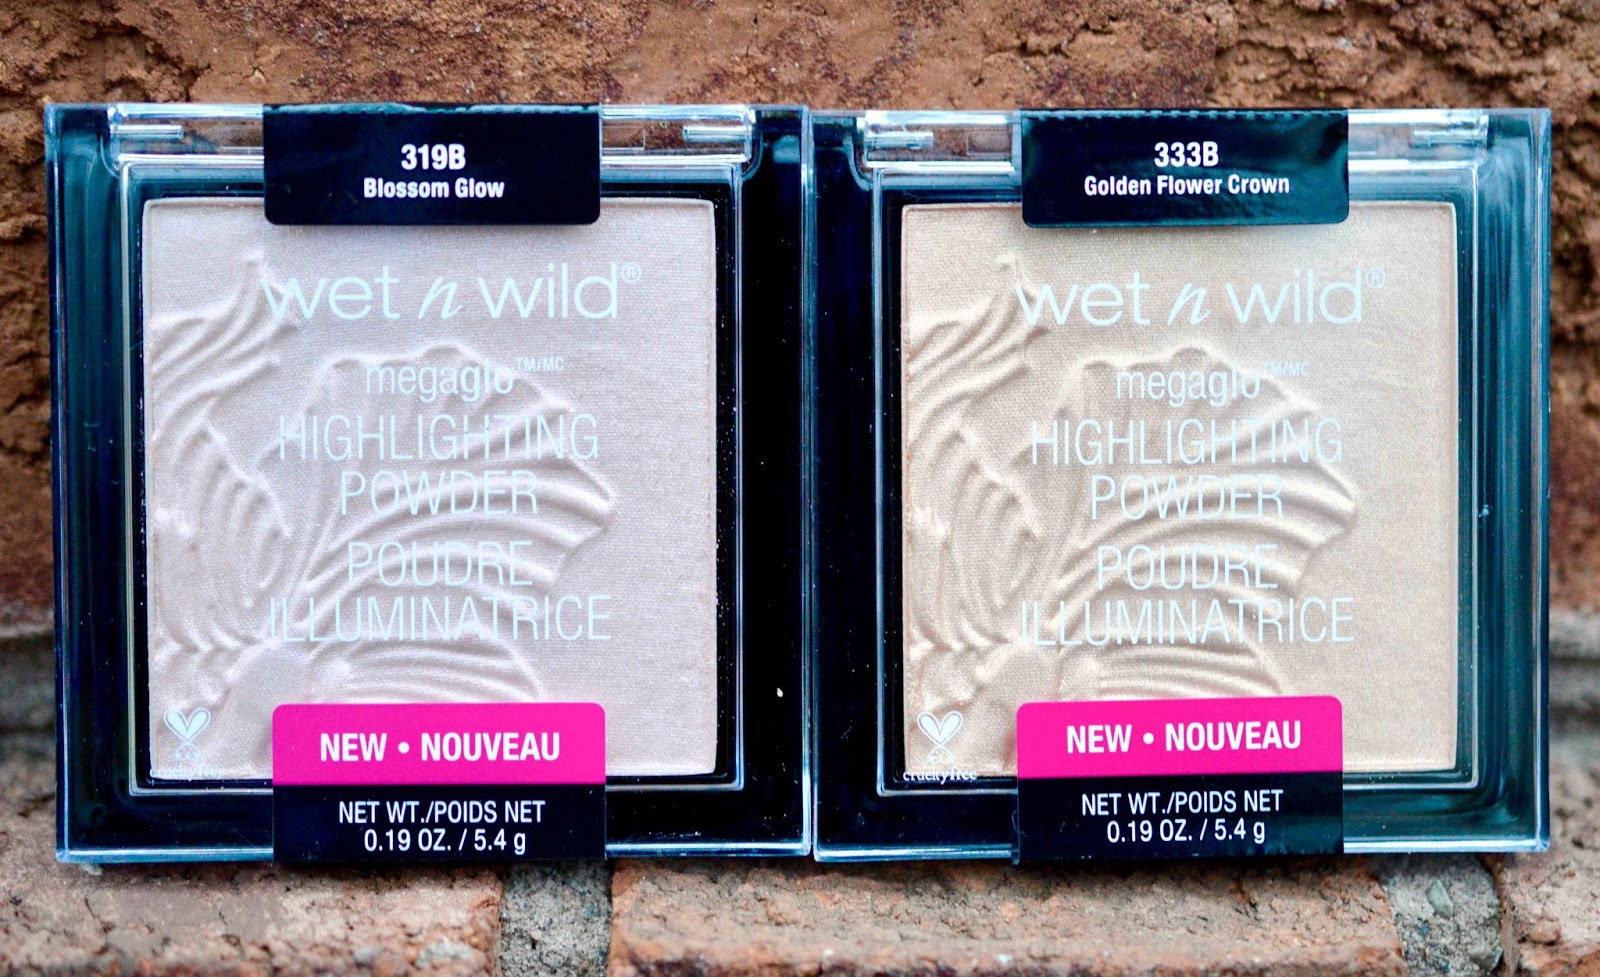 wet n wild powder highlight